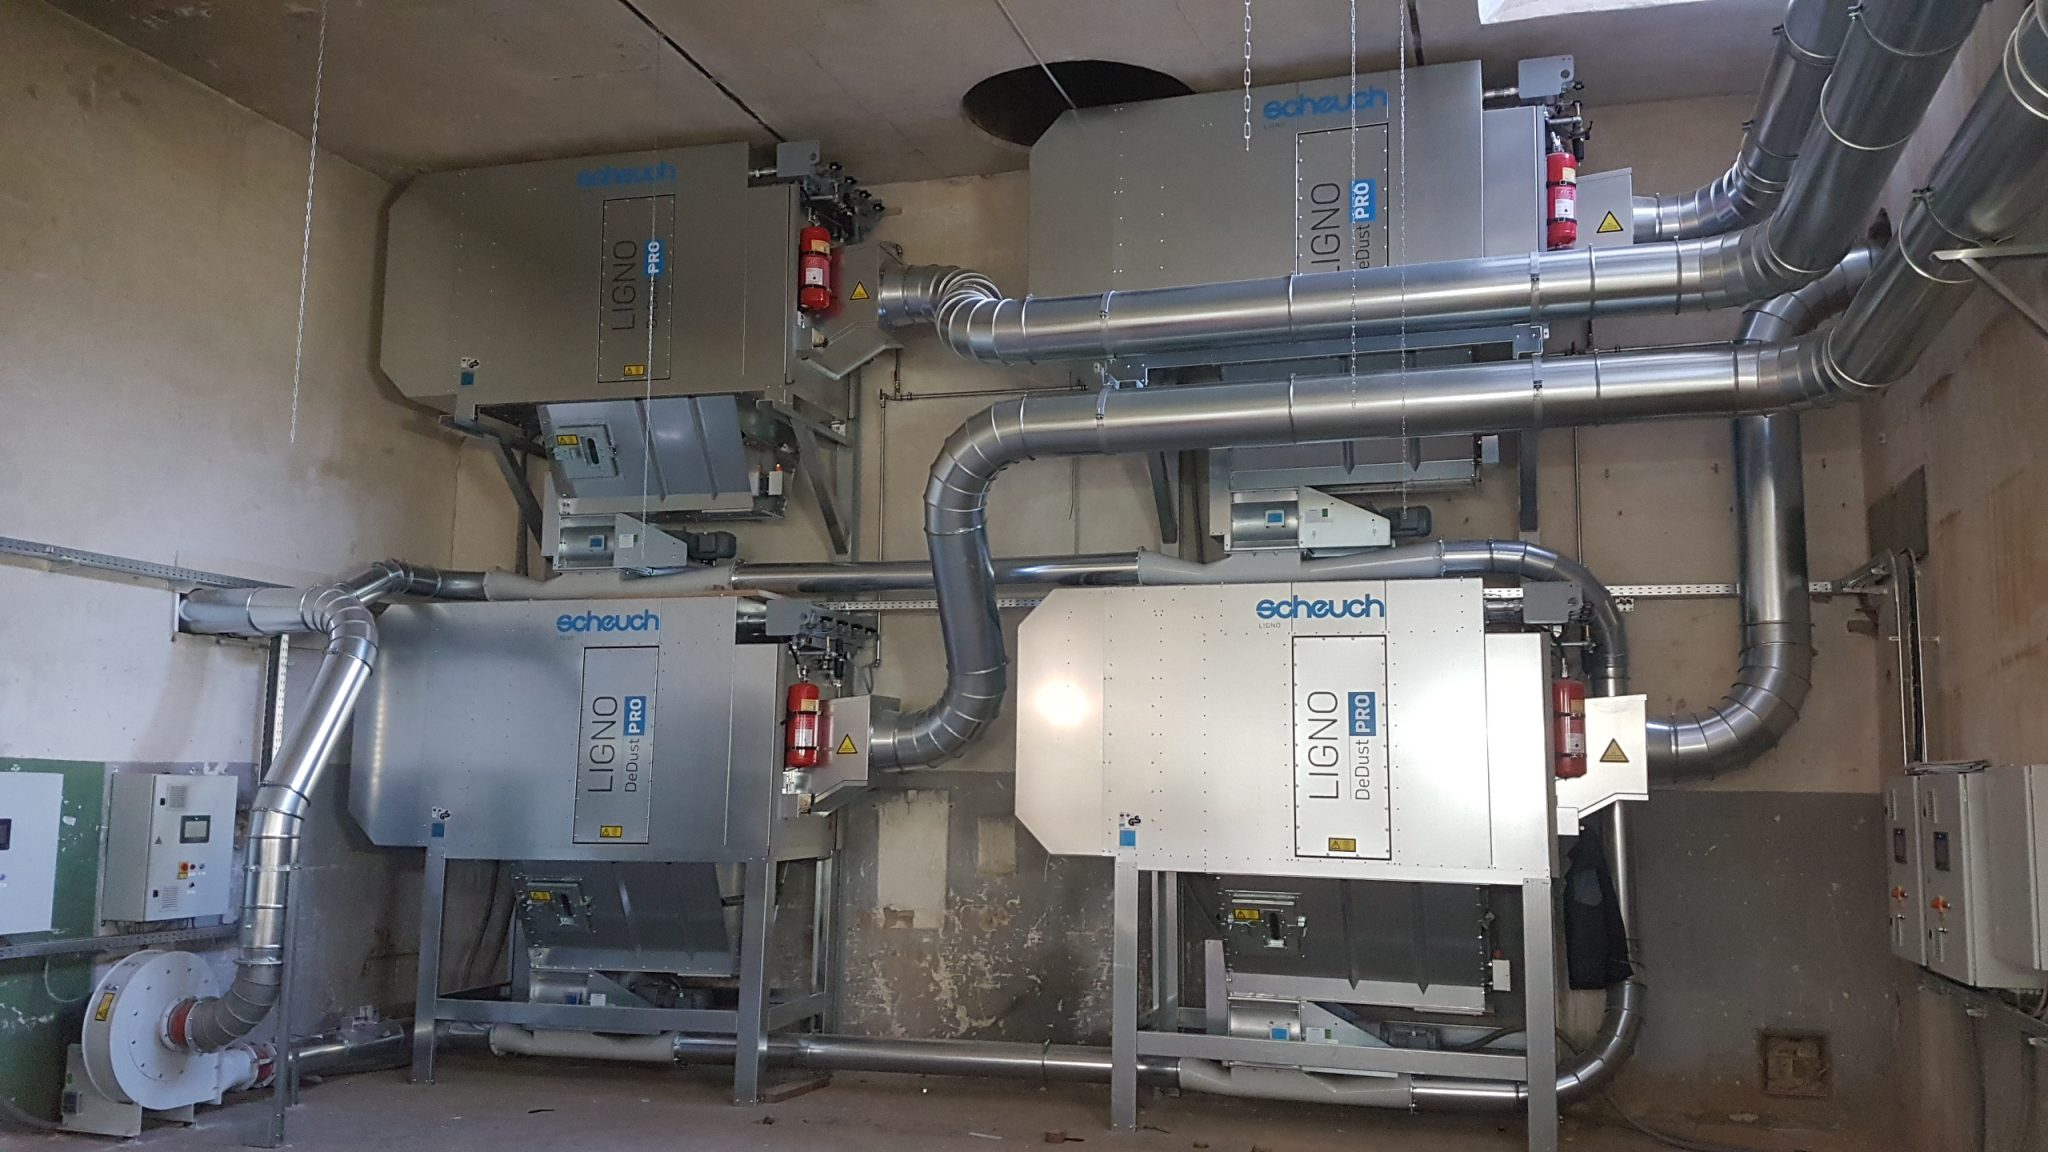 Ligno Dedust Pro Deduster Electrical Wiring And Piping Norer Tischlerei Gmbh